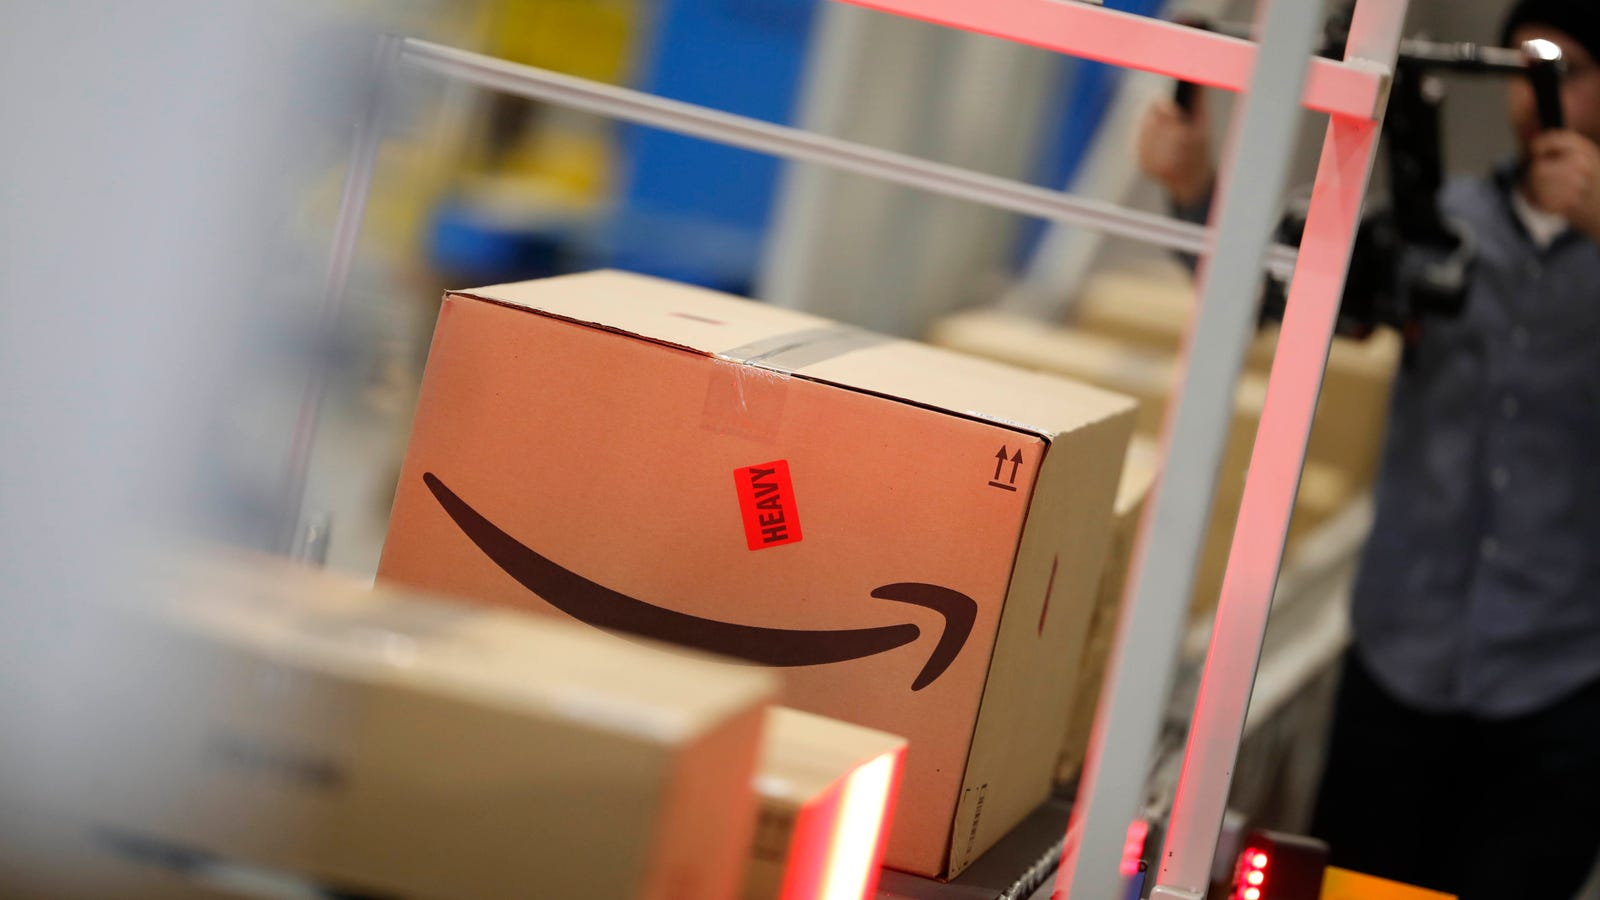 amazon is reportedly sick of hawking you cheap 'crap' that doesn't